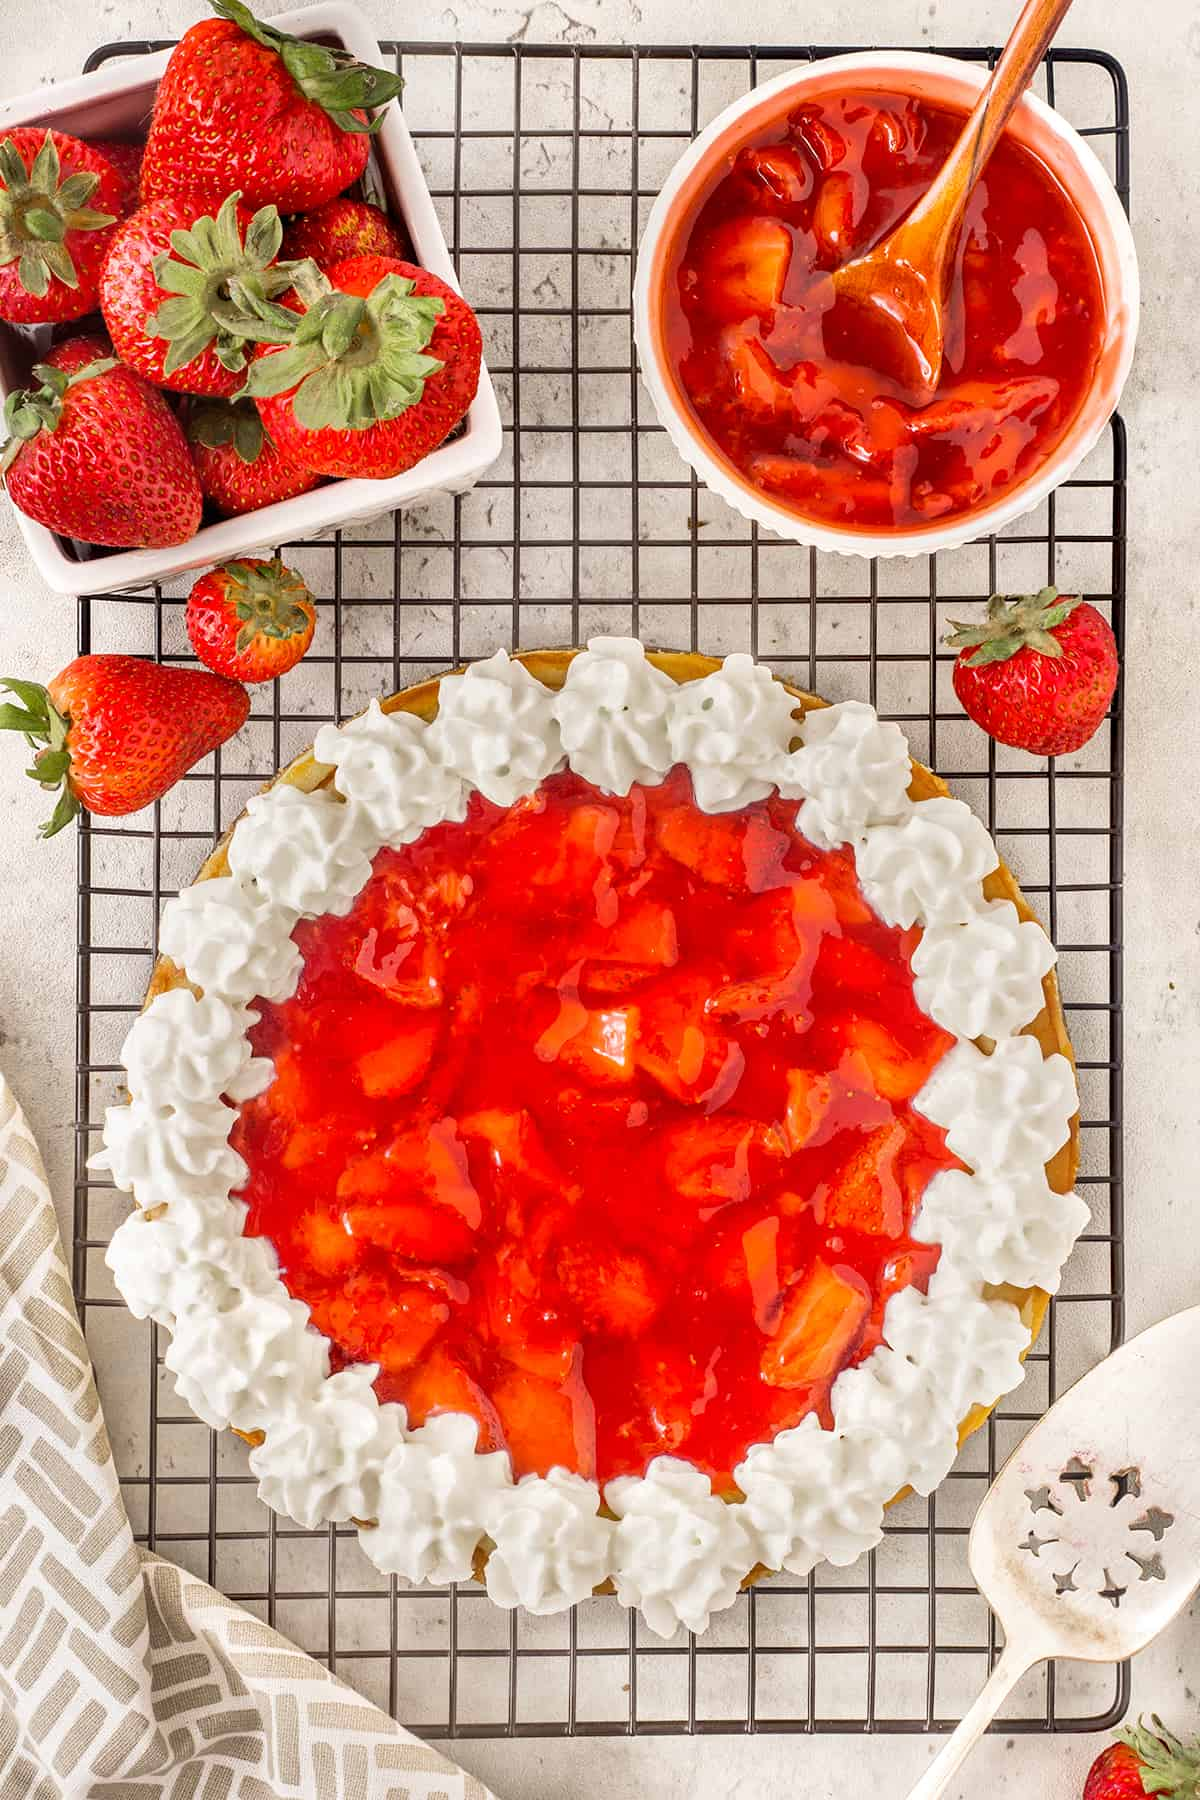 Overhead of strawberry cheesecake with a whipped cream edge